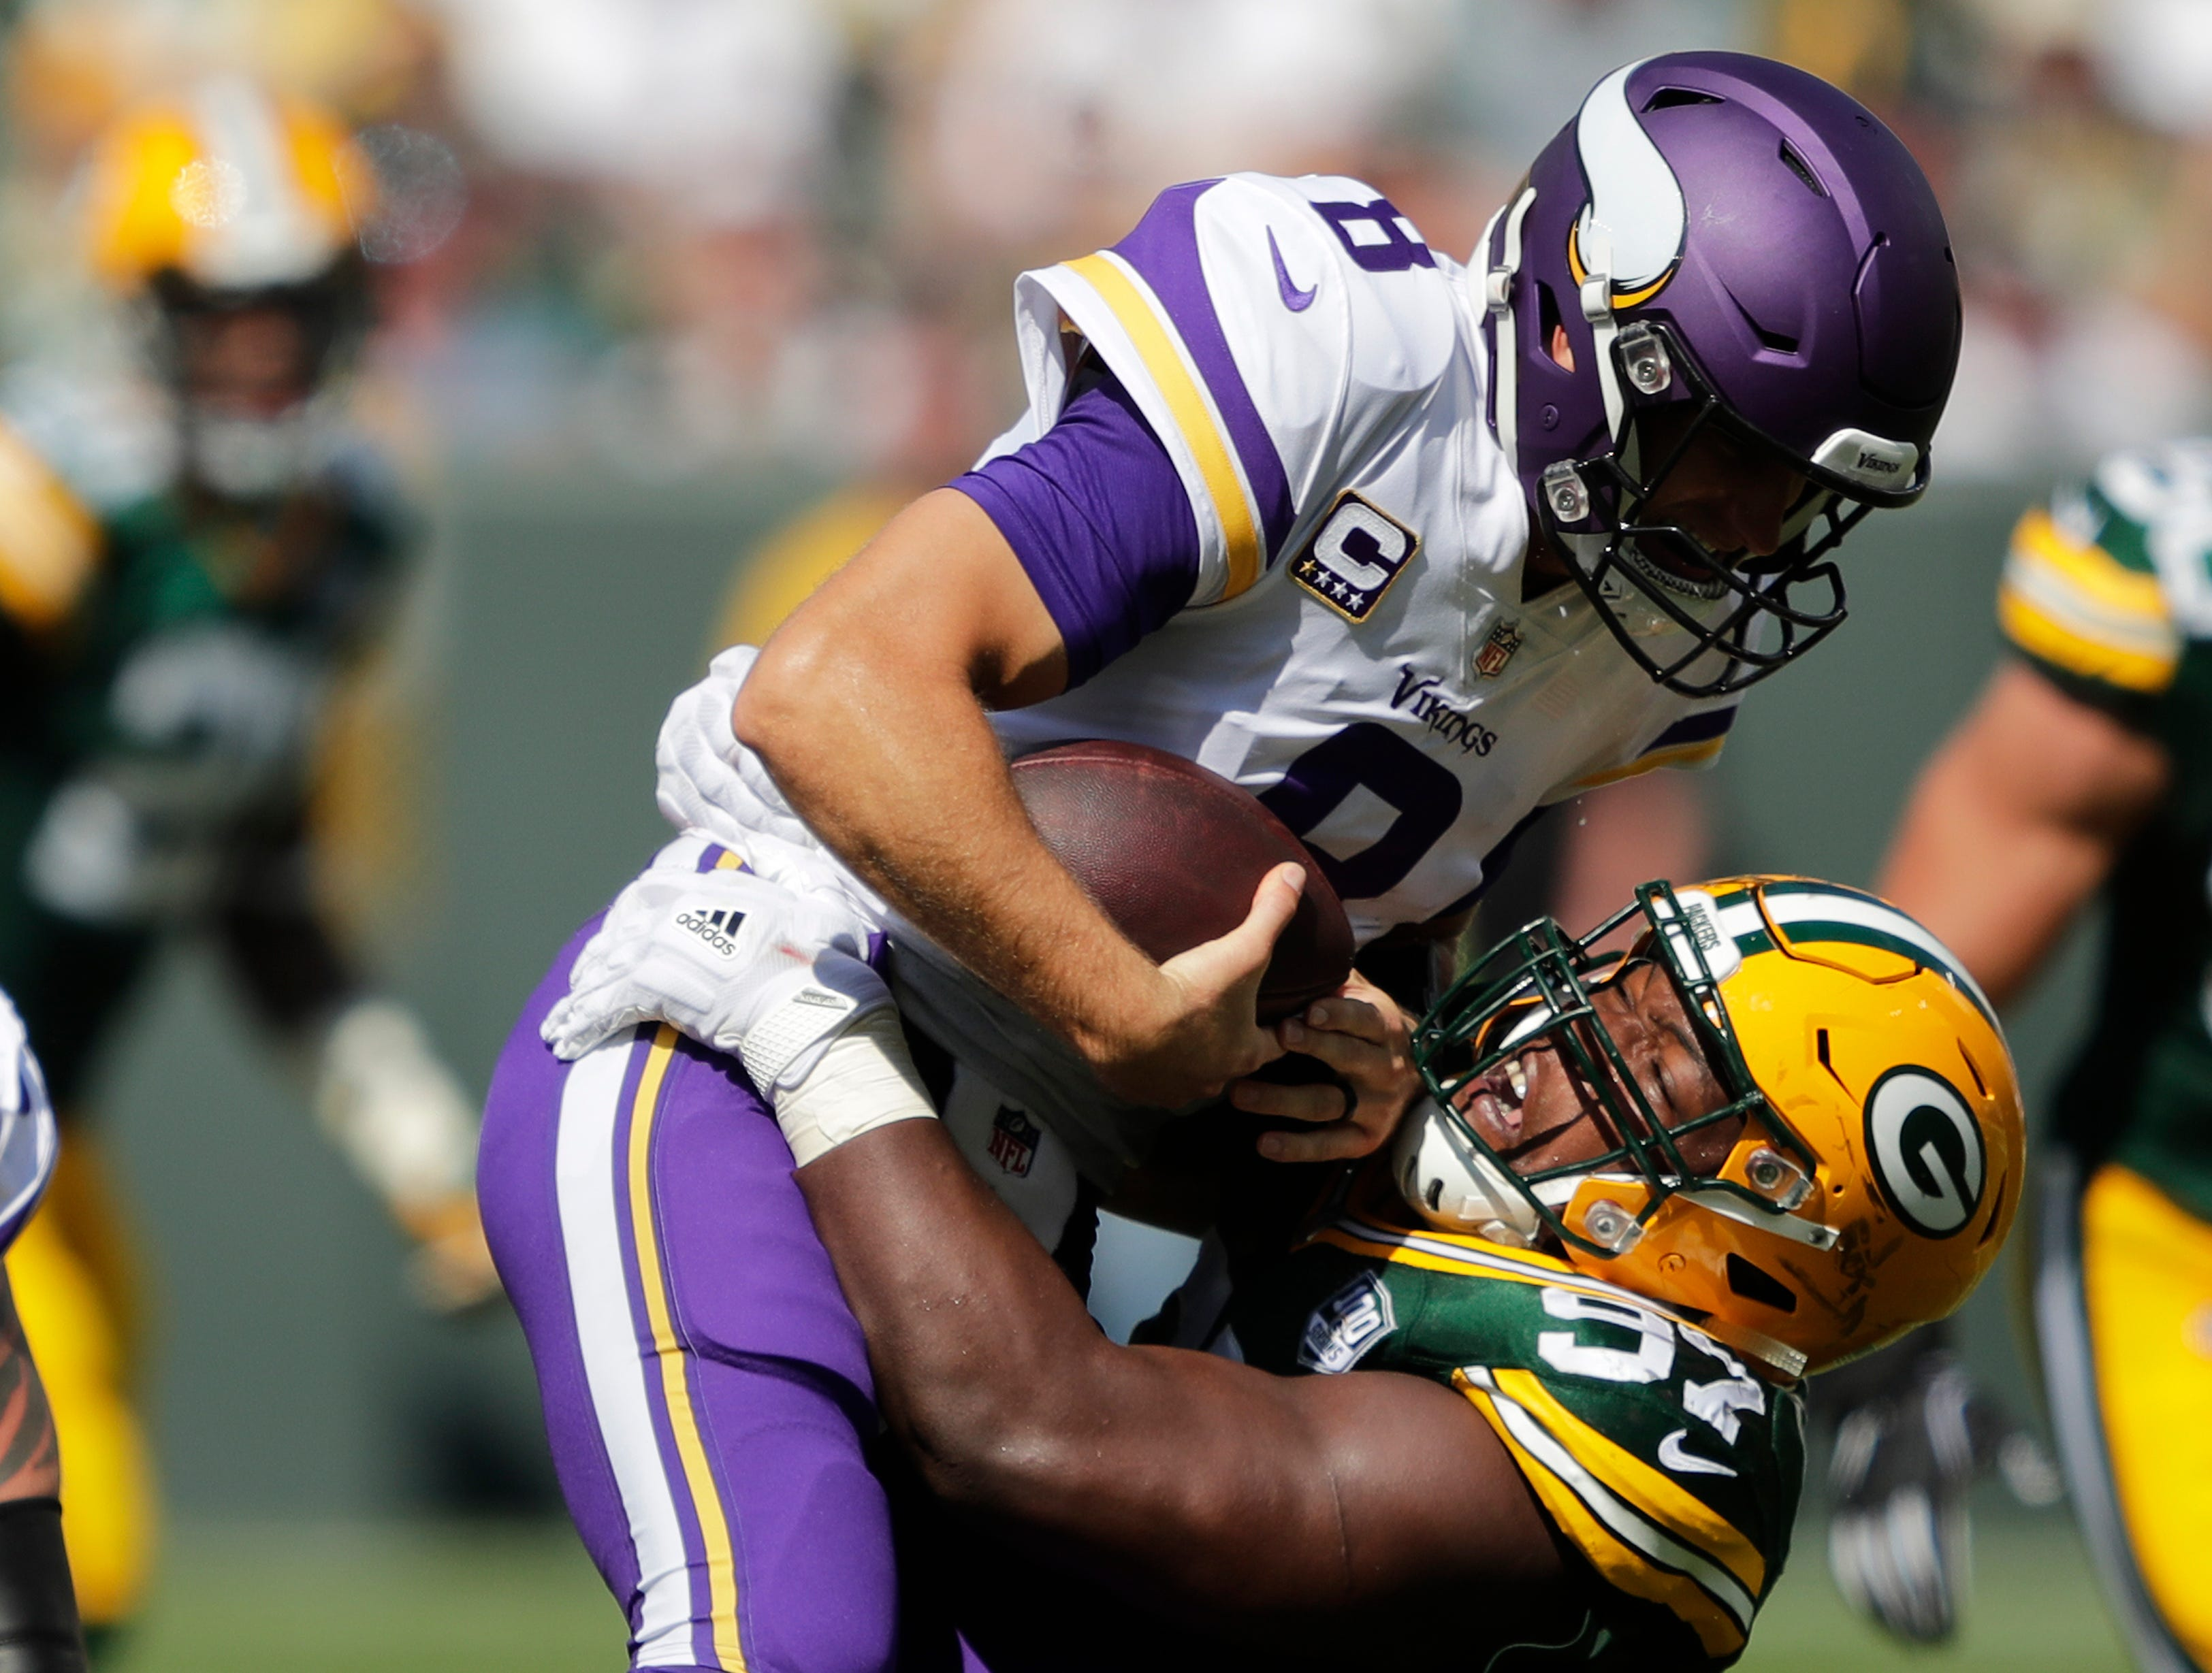 Green Bay Packers nose tackle Kenny Clark (97) sacks Minnesota Vikings quarterback Kirk Cousins (8) in the third quarter during their football game Sunday, Sept. 16, 2018, at Lambeau Field in Green Bay, Wis. Dan Powers/USA TODAY NETWORK-Wisconsin